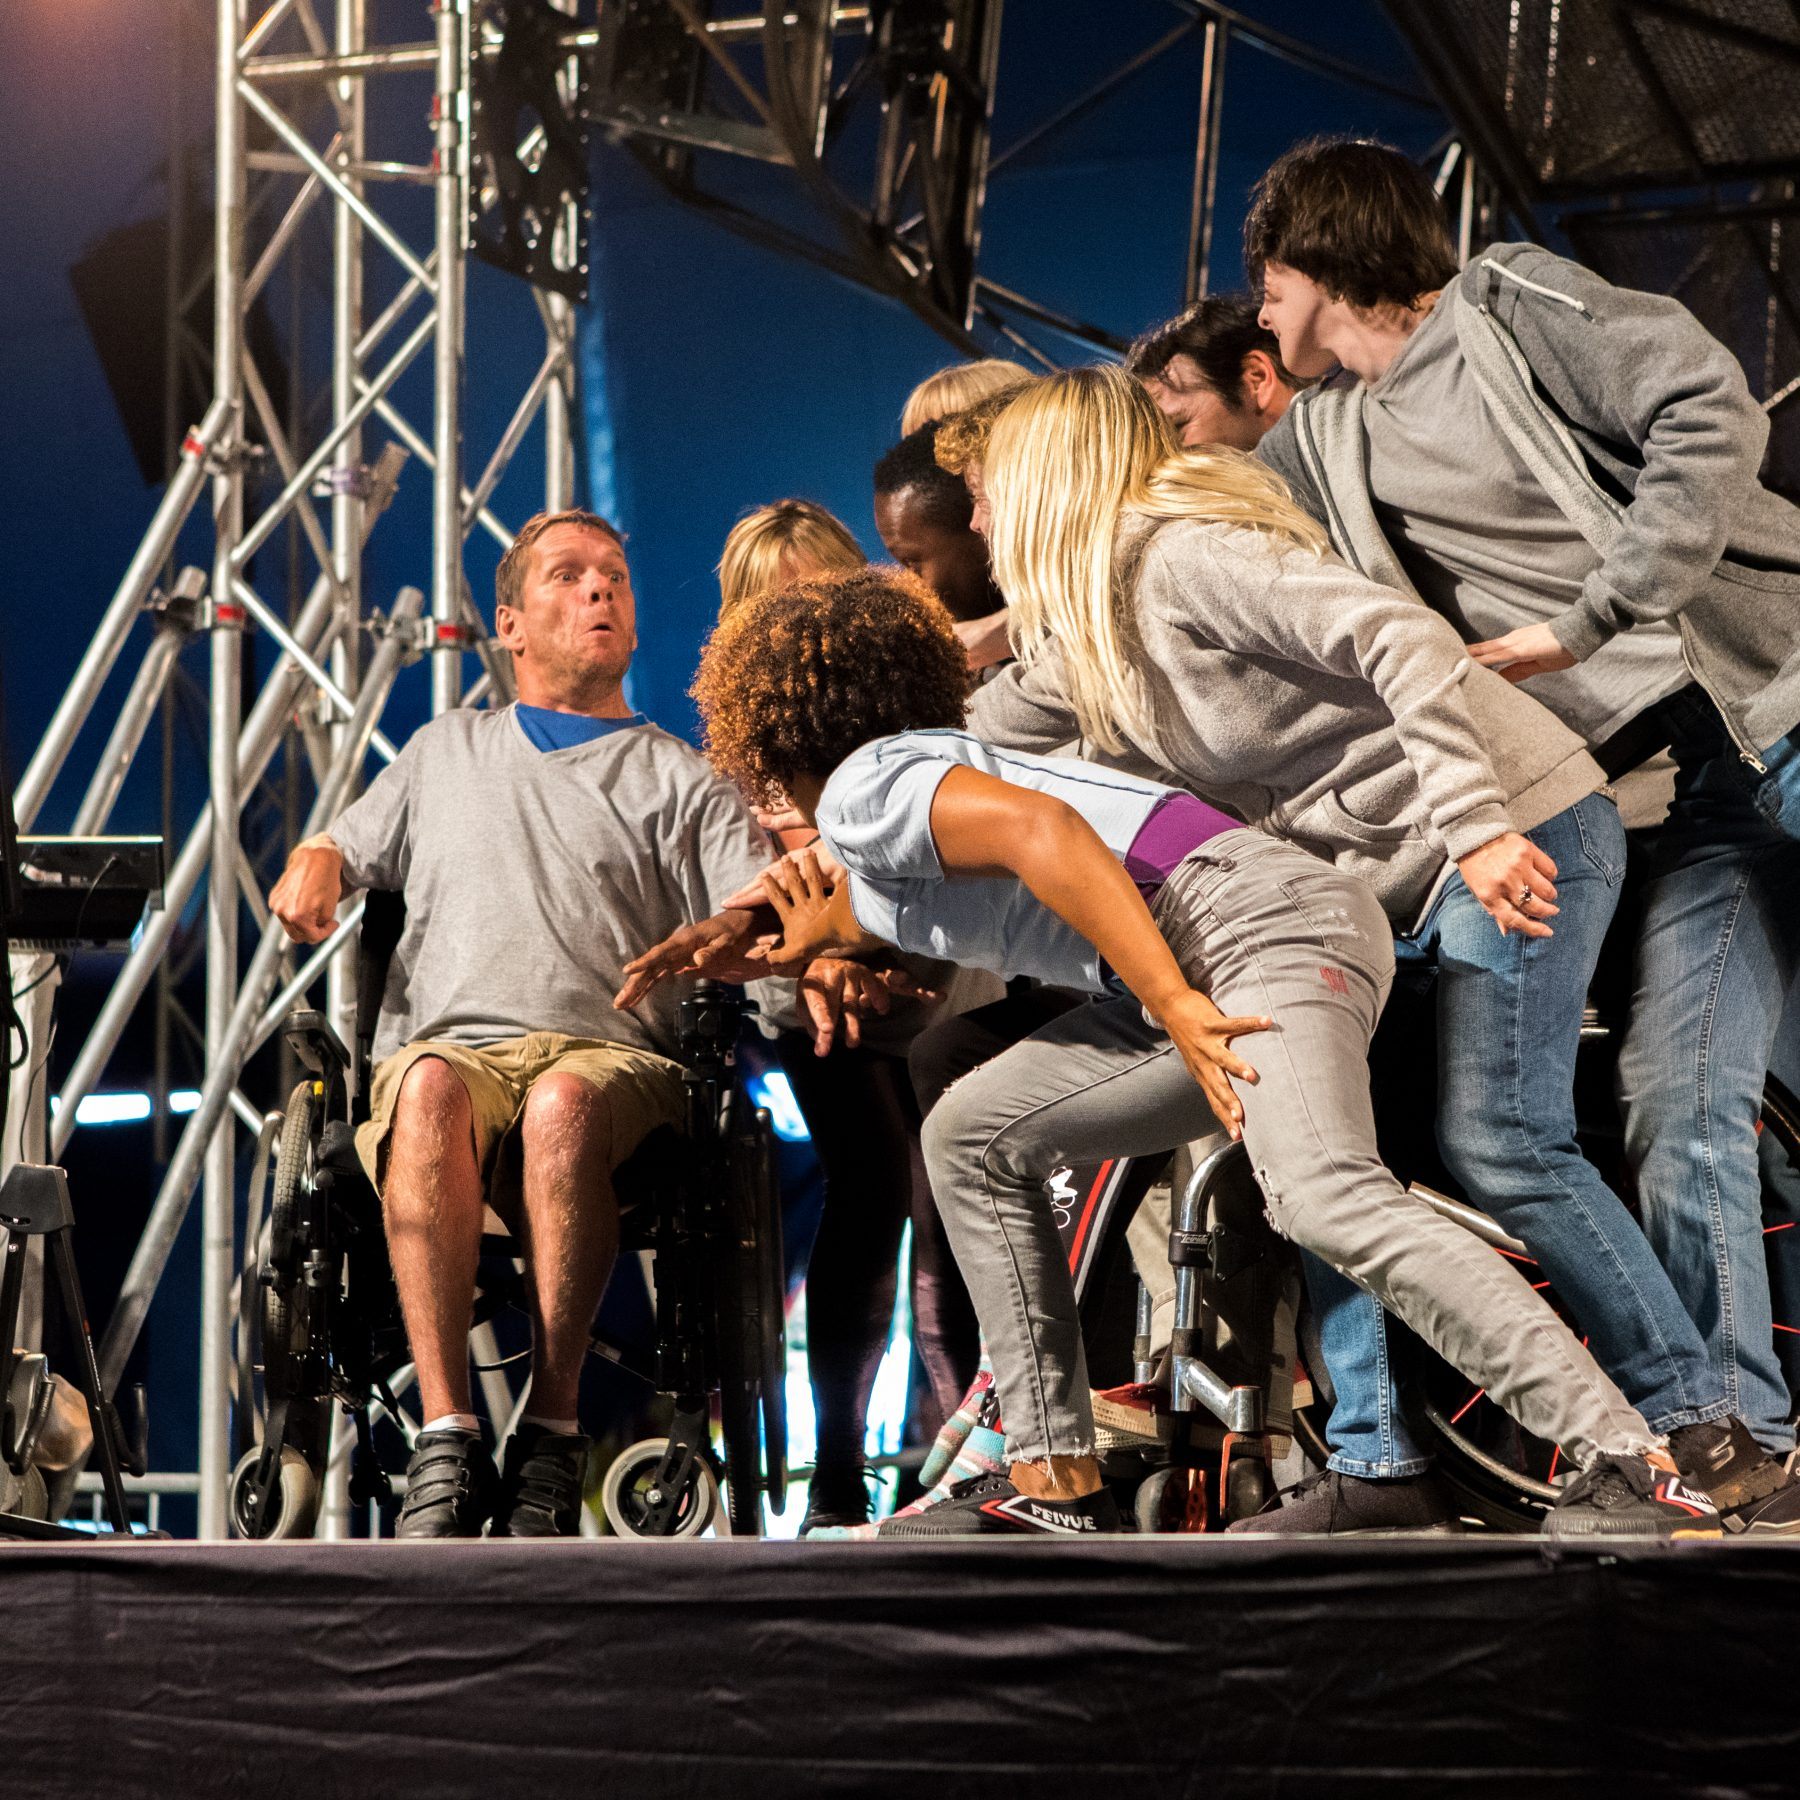 A man in a wheelchair looks surprised while a group of performers lean over him. Musicians on the left and a giant steel wheel in the background.